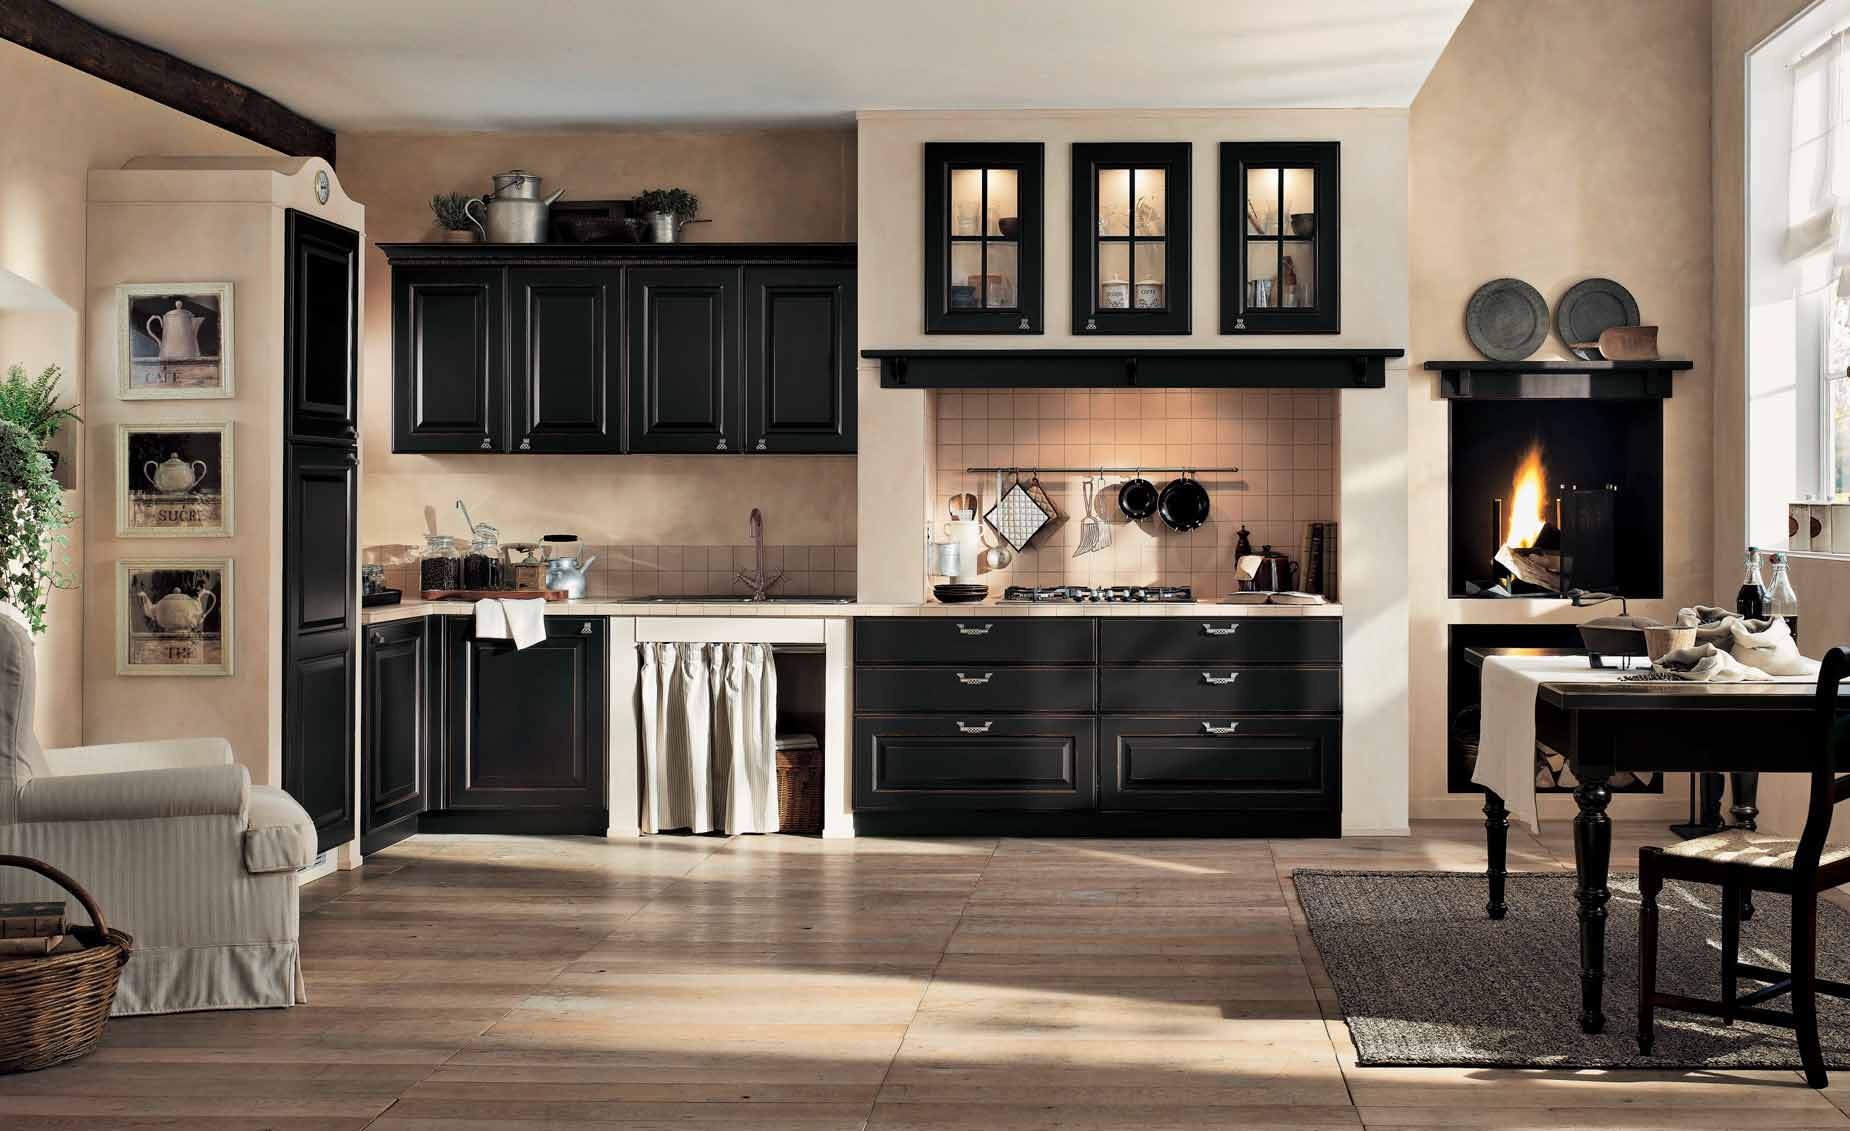 Interior Exterior Plan Classic Kitchen In Black And